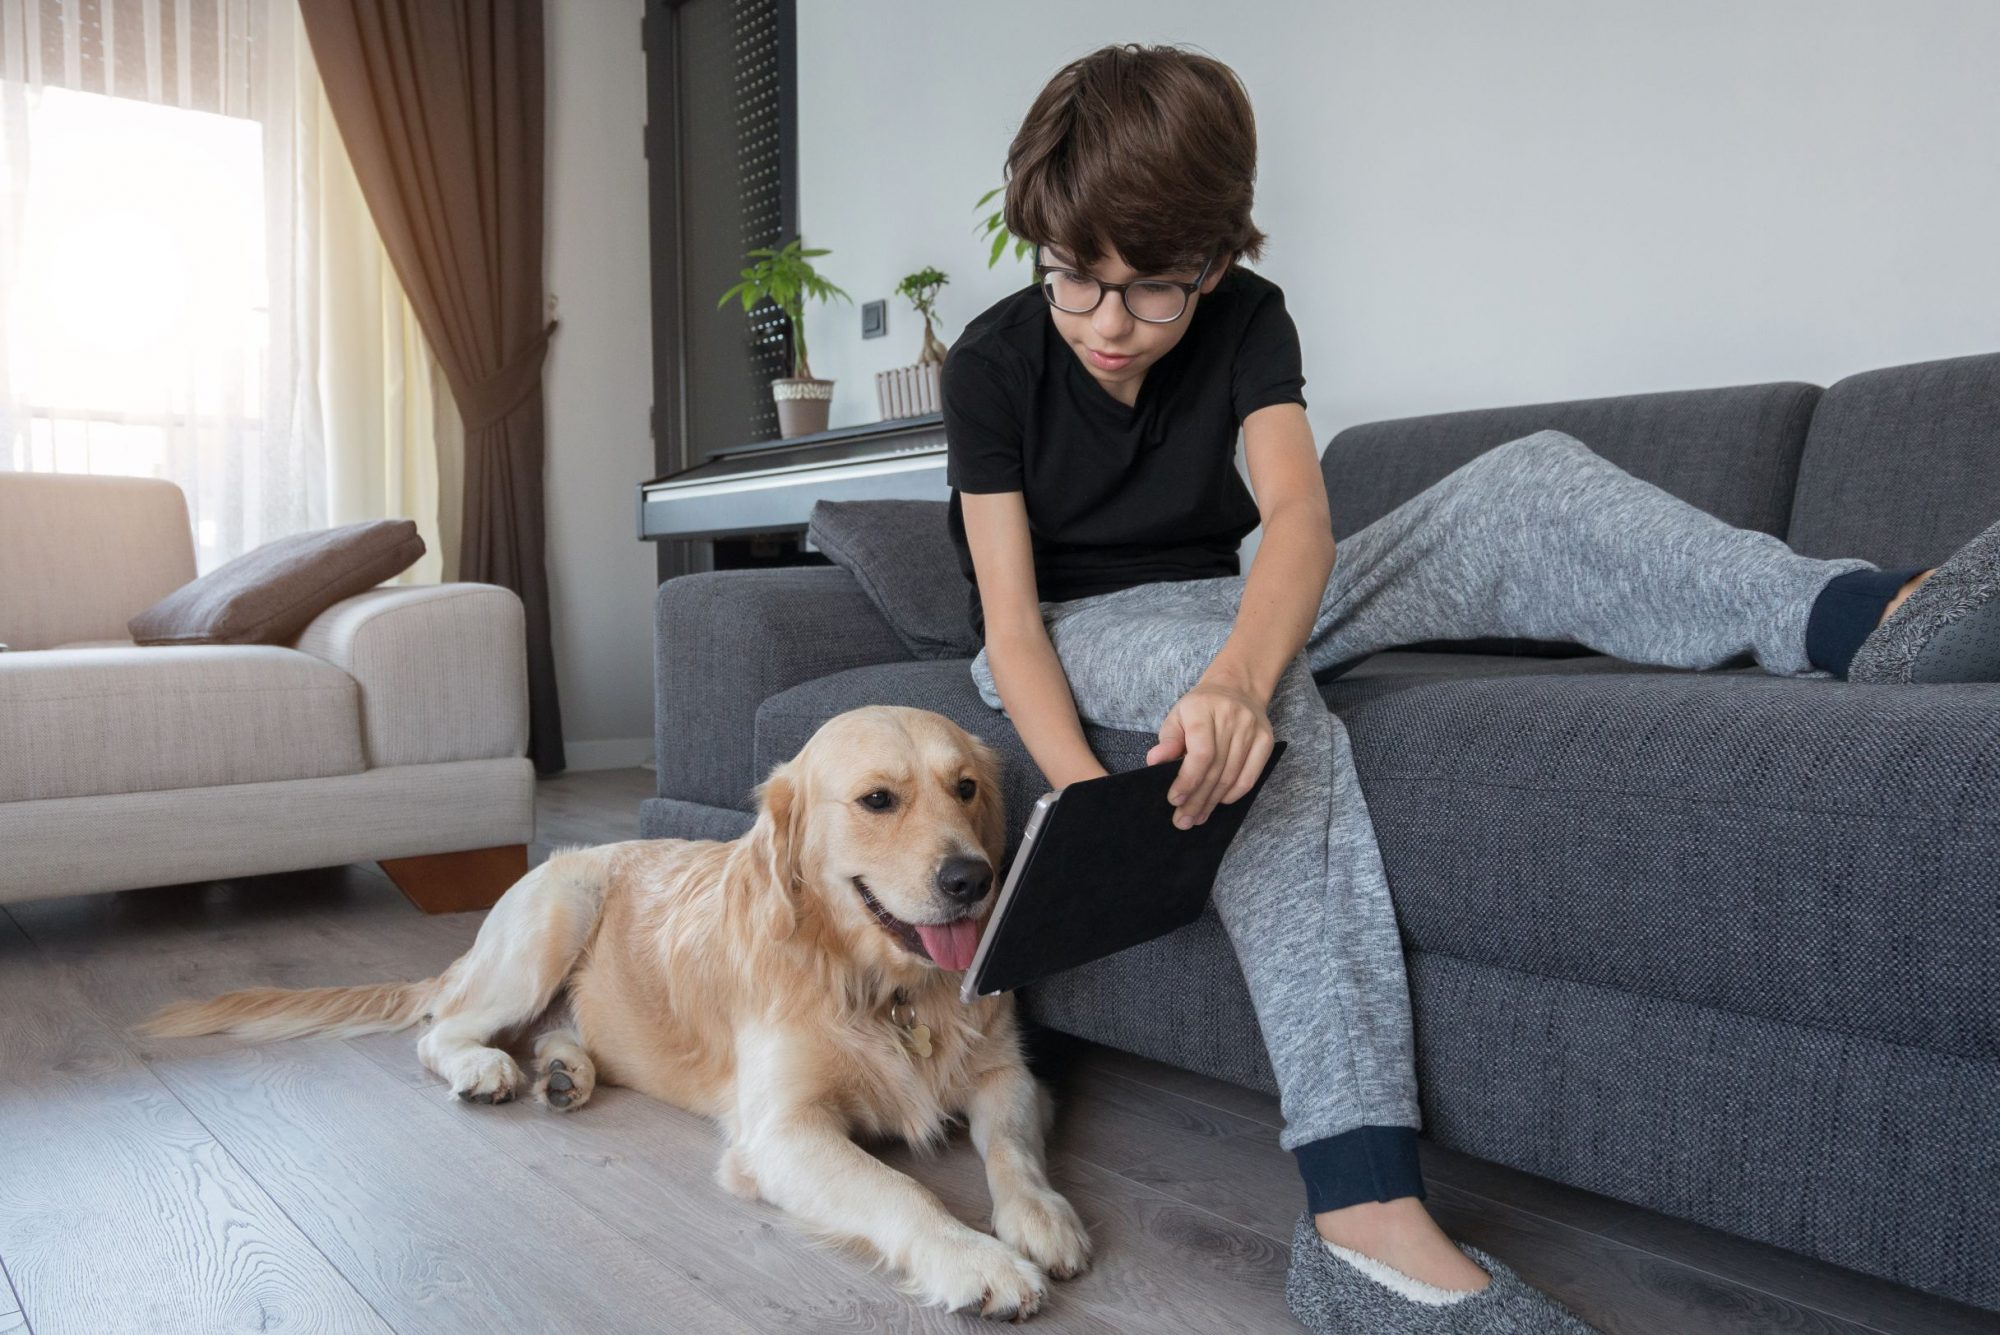 A boy shows his dog something on his tablet.